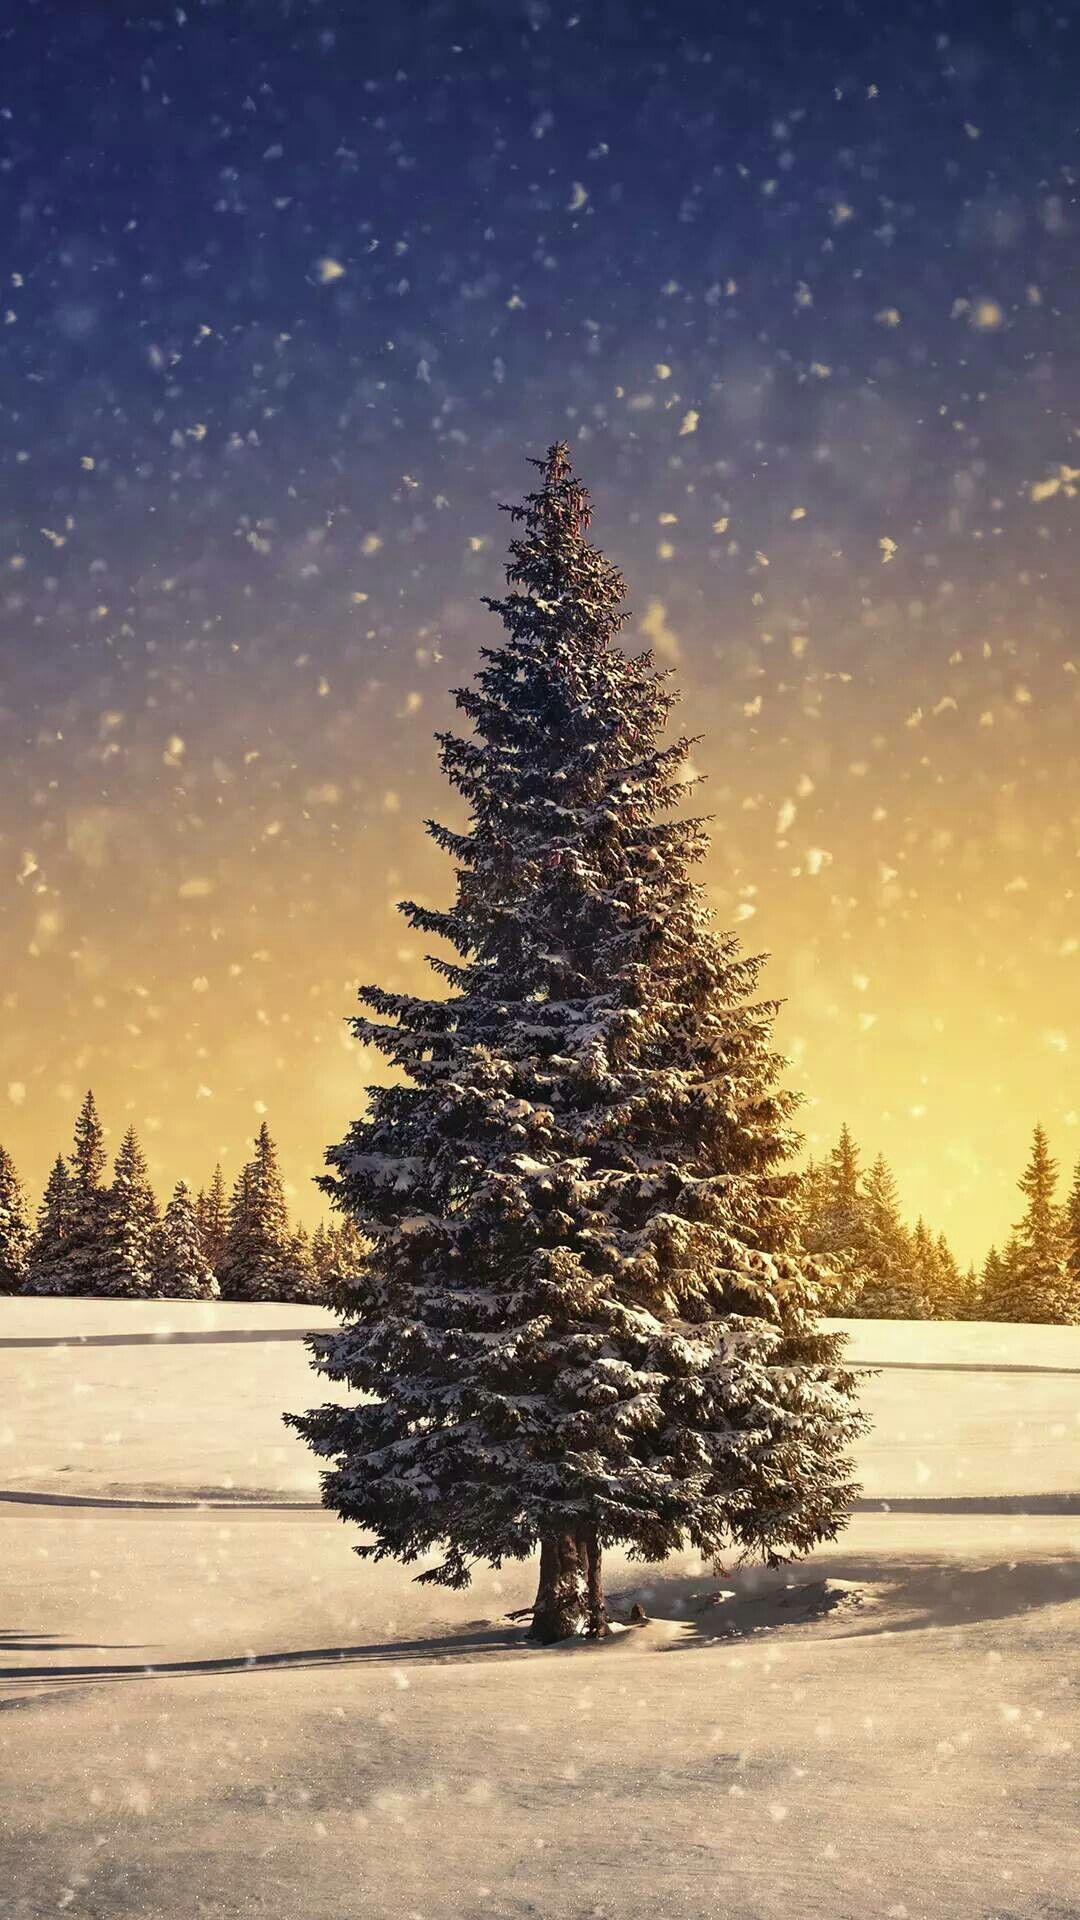 Snow Covered Christmas Tree Concept Art Snow Covered Christmas